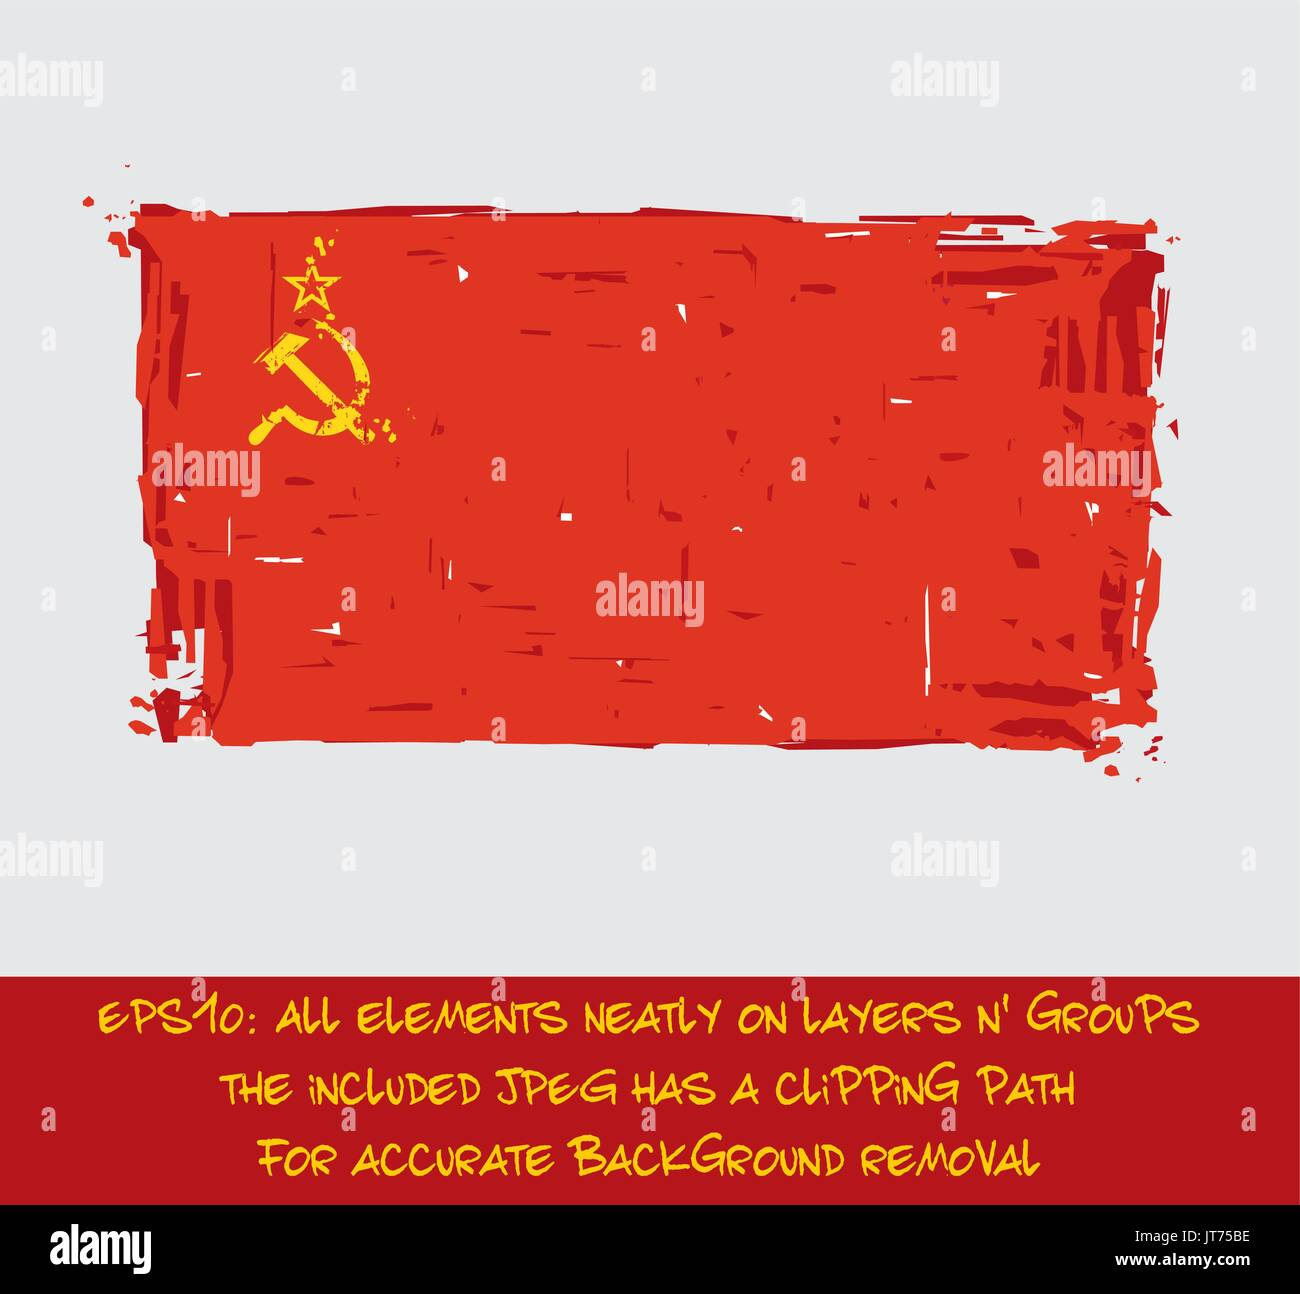 Soviet Union Flat Flag - Vector Artistic Brush Strokes and Splashes. Grunge Illustration, all elements neatly on layers and groups. The JPEG has a cli - Stock Image